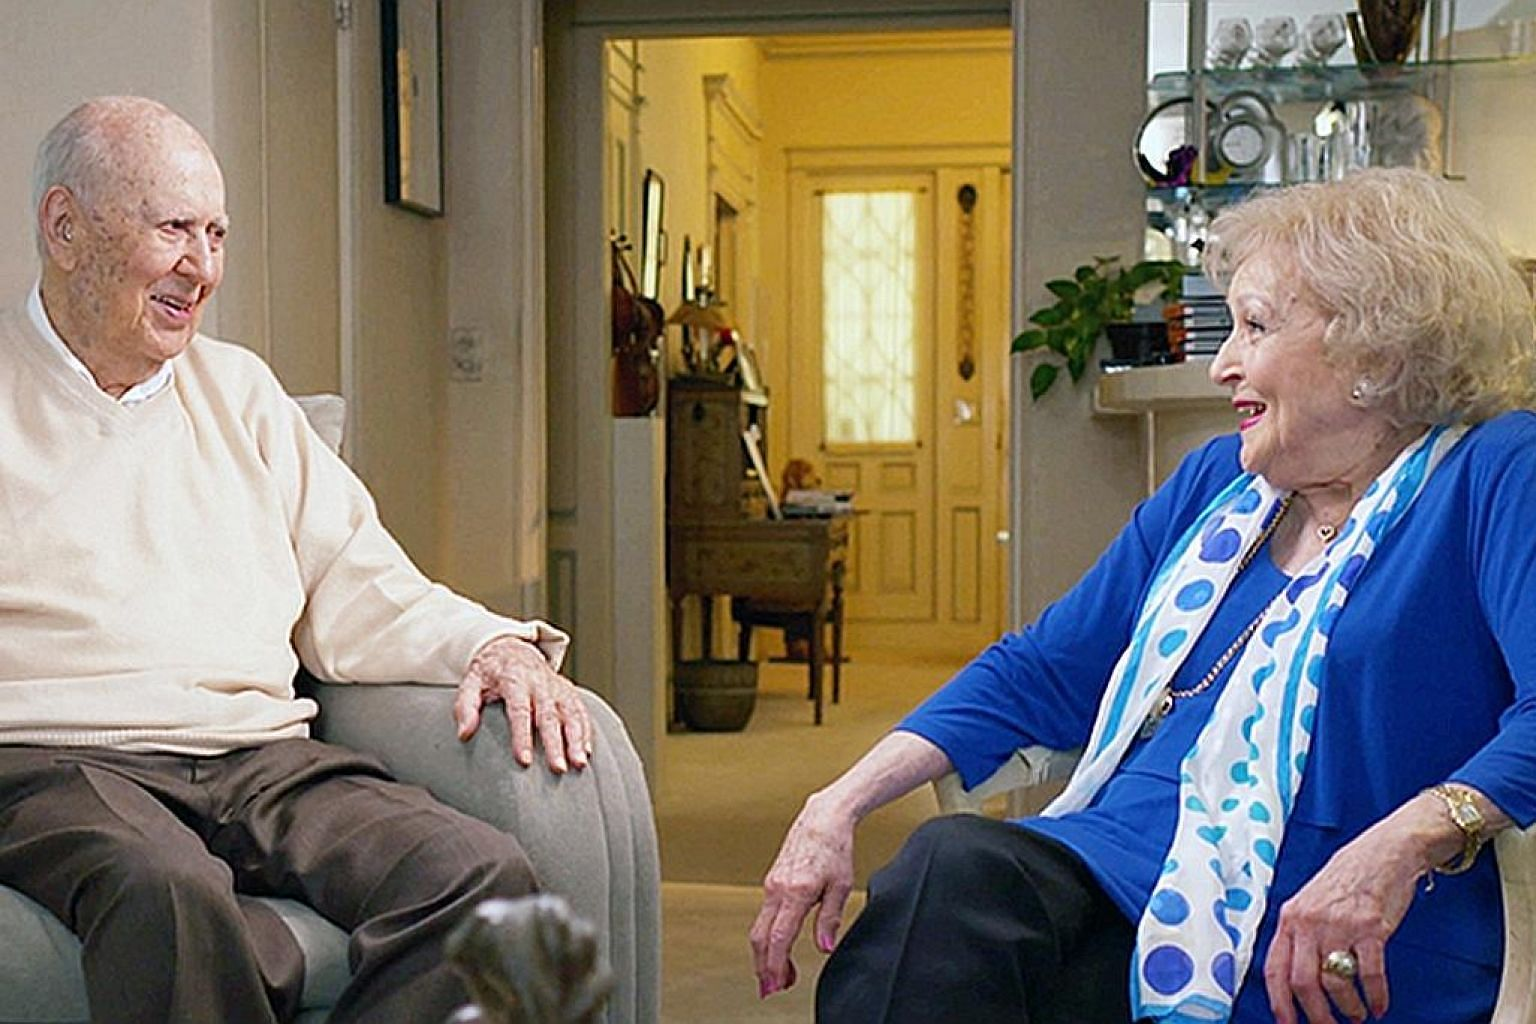 Carl Reiner and Betty White in If You're Not In The Obit, Eat Breakfast.